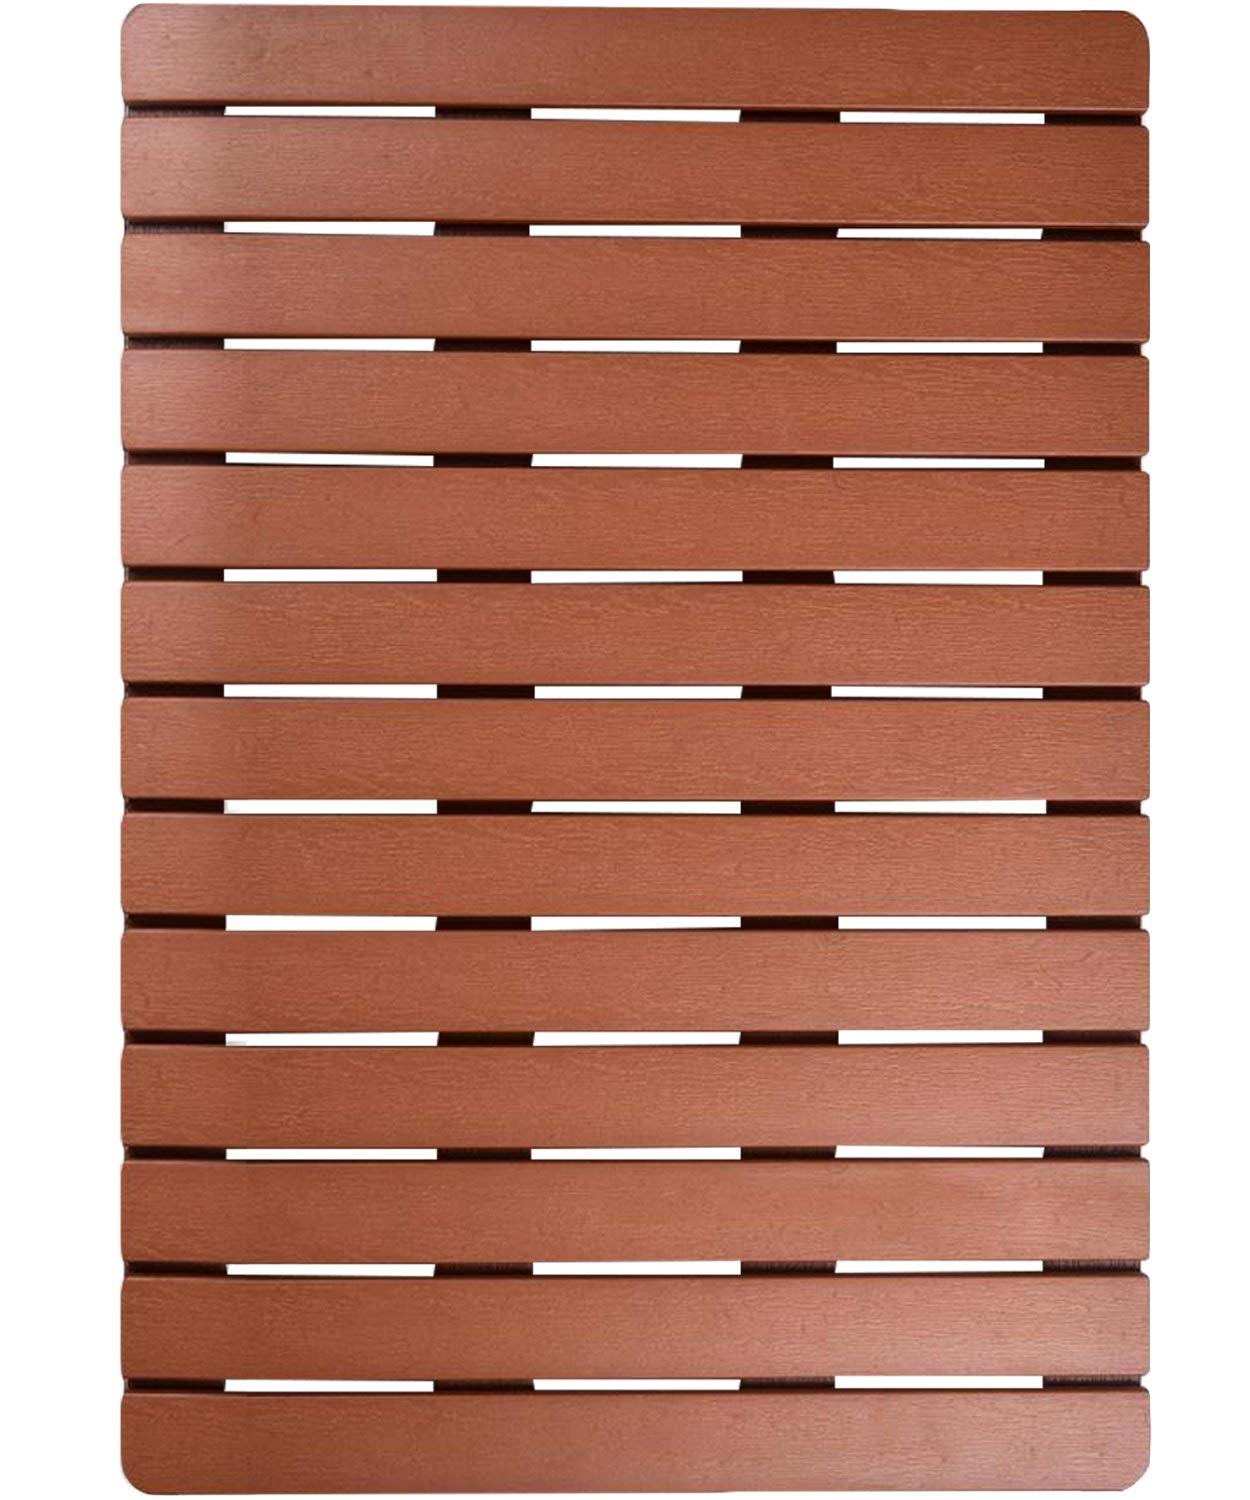 I FRMMY Premium Large Bath Tub Shower Floor Mat Made of PS Wood- Suitable for Textured and Smooth Surface- Non Slip Bathroom mat with Drain Hole- 20'' x 28.5'' (Teak Color) (Renewed)